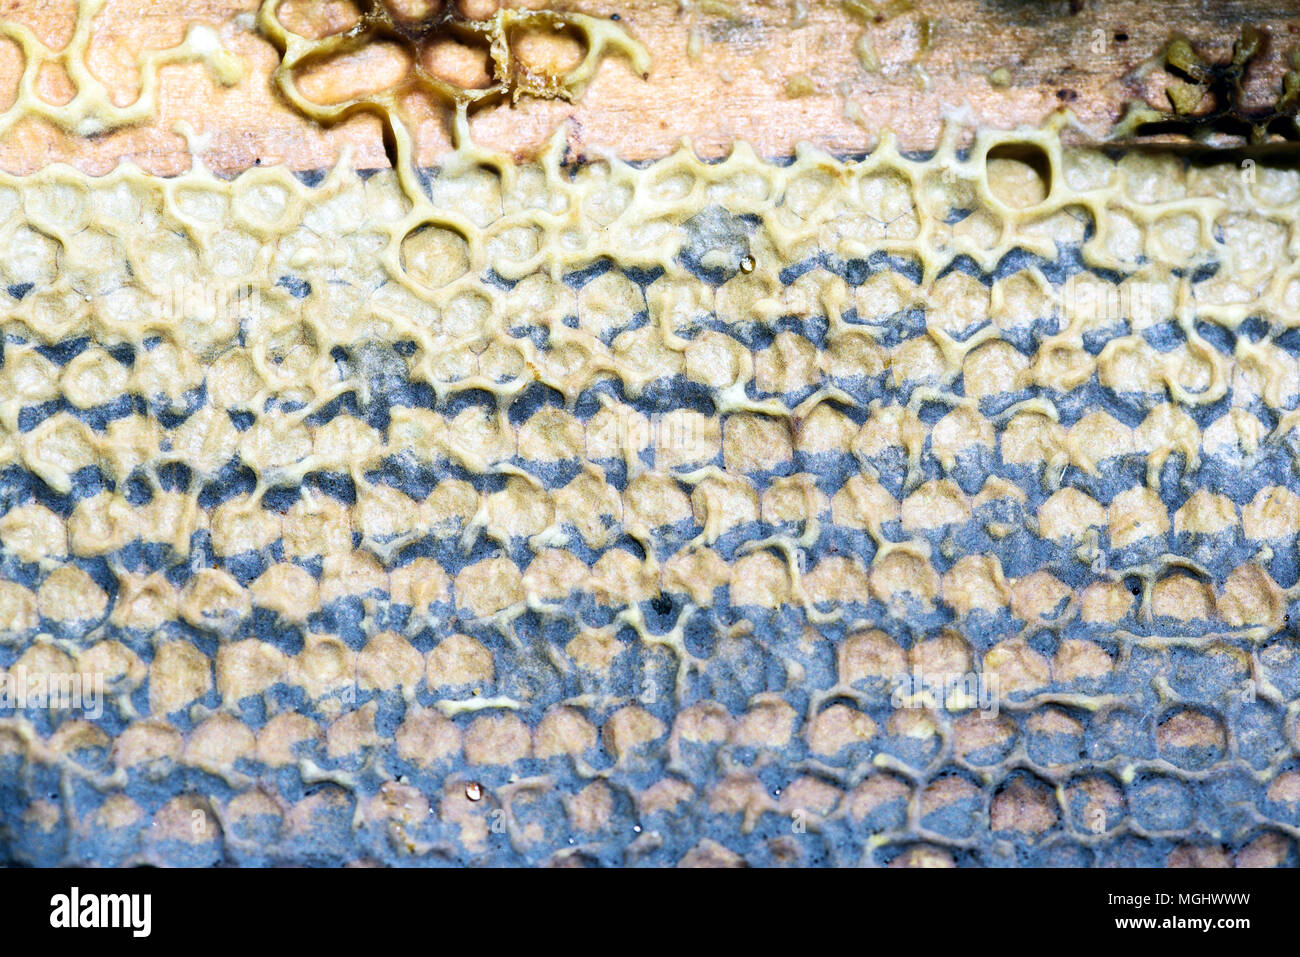 Closeup macro of yellow bee honeycomb in a hexagon pattern with sealed golden sweet honey compartments of the hive interior found wild in nature Stock Photo